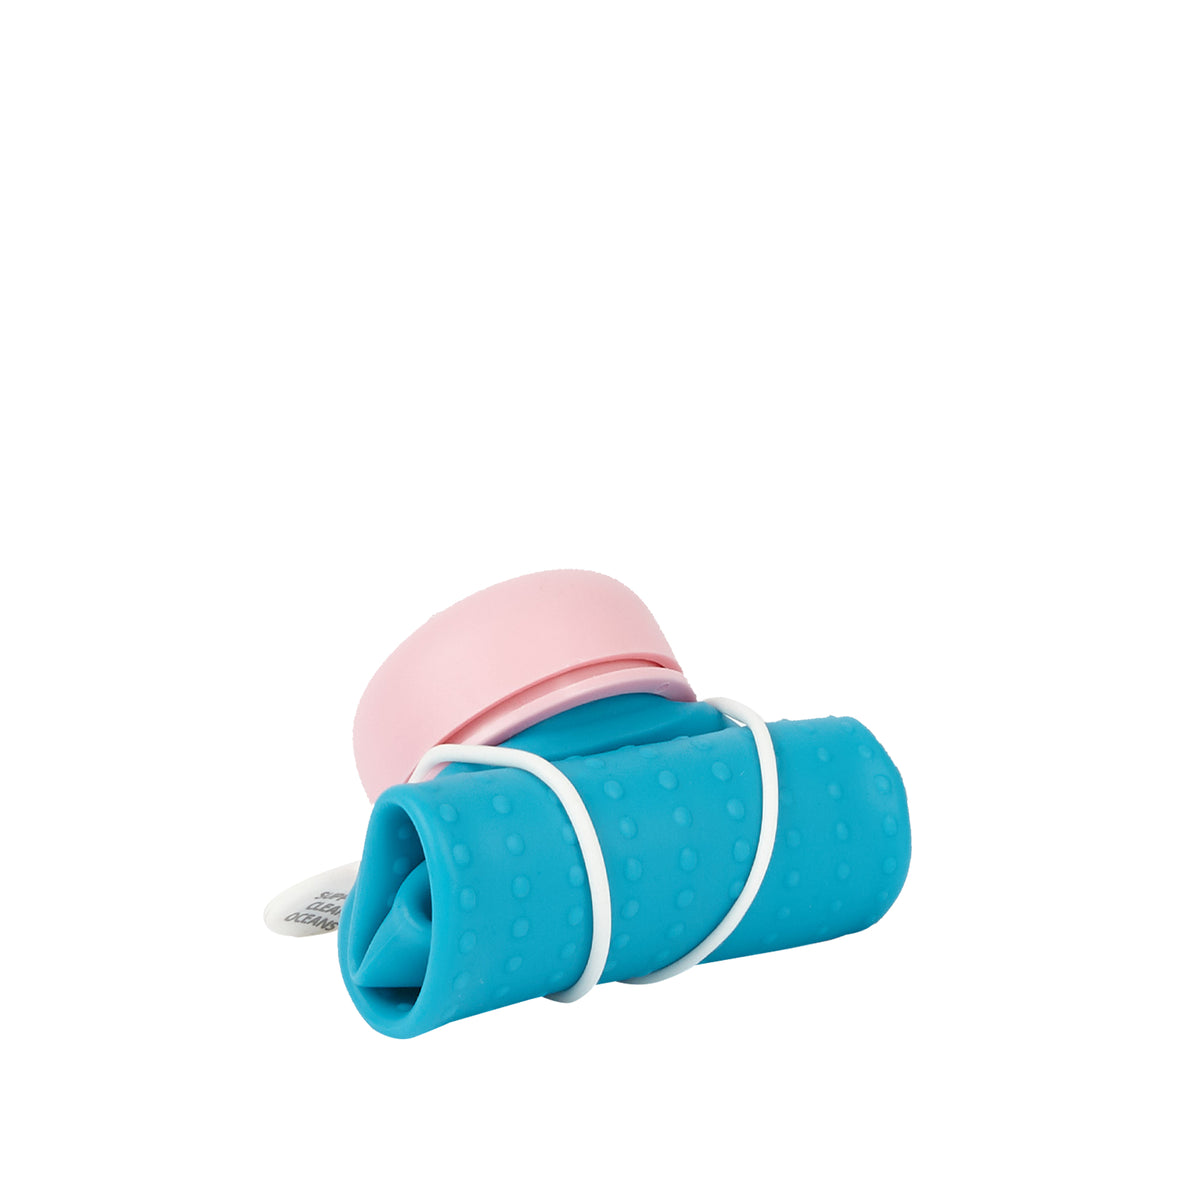 Rolla Bottle - Aqua, Pink Lid + White Strap - rolled